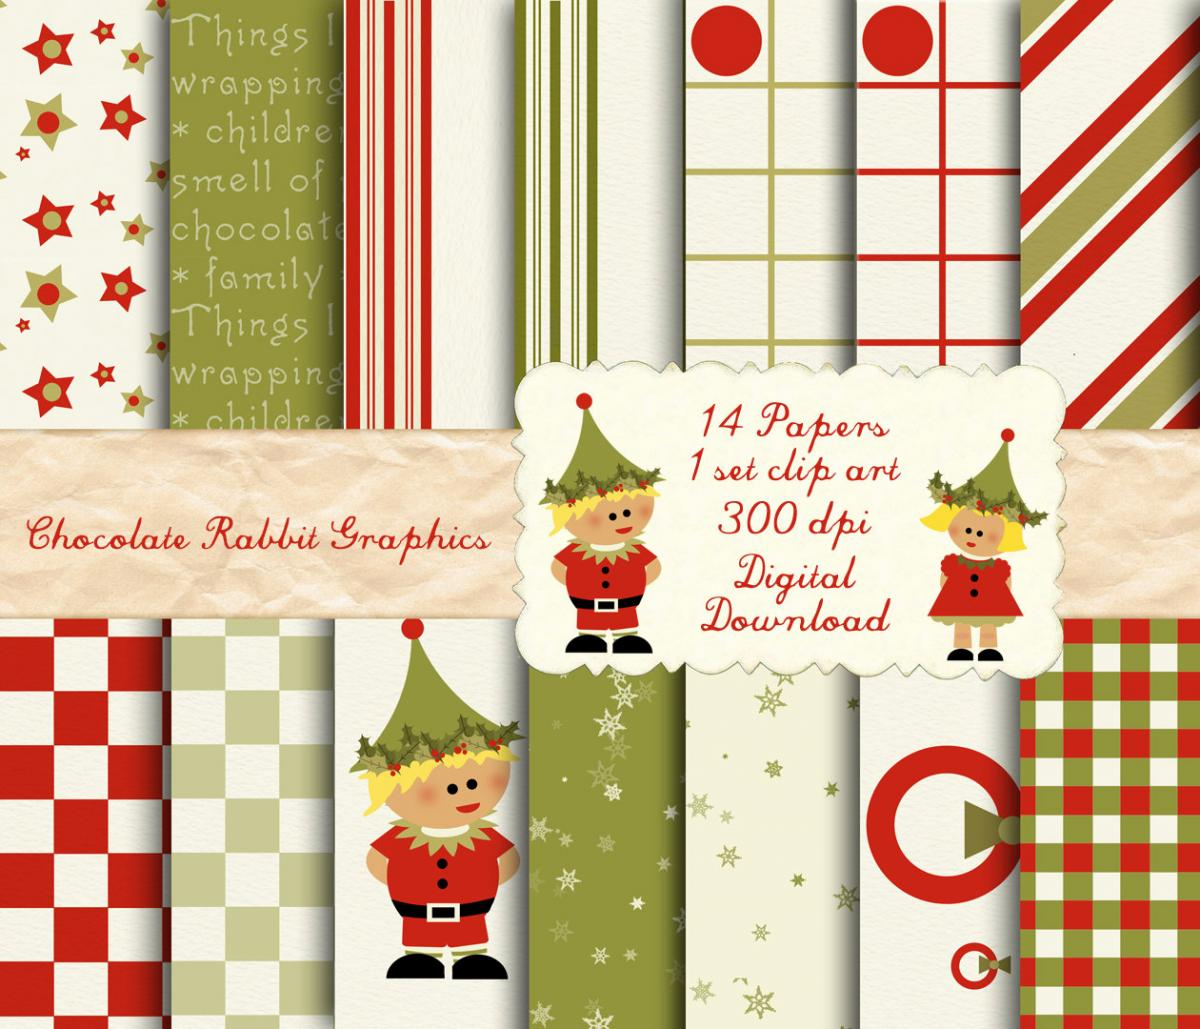 Christmas Digital Scrapbook Clip Art 14 12x12 Paper Pack Download Elf Holiday Papers Plus Clip Art